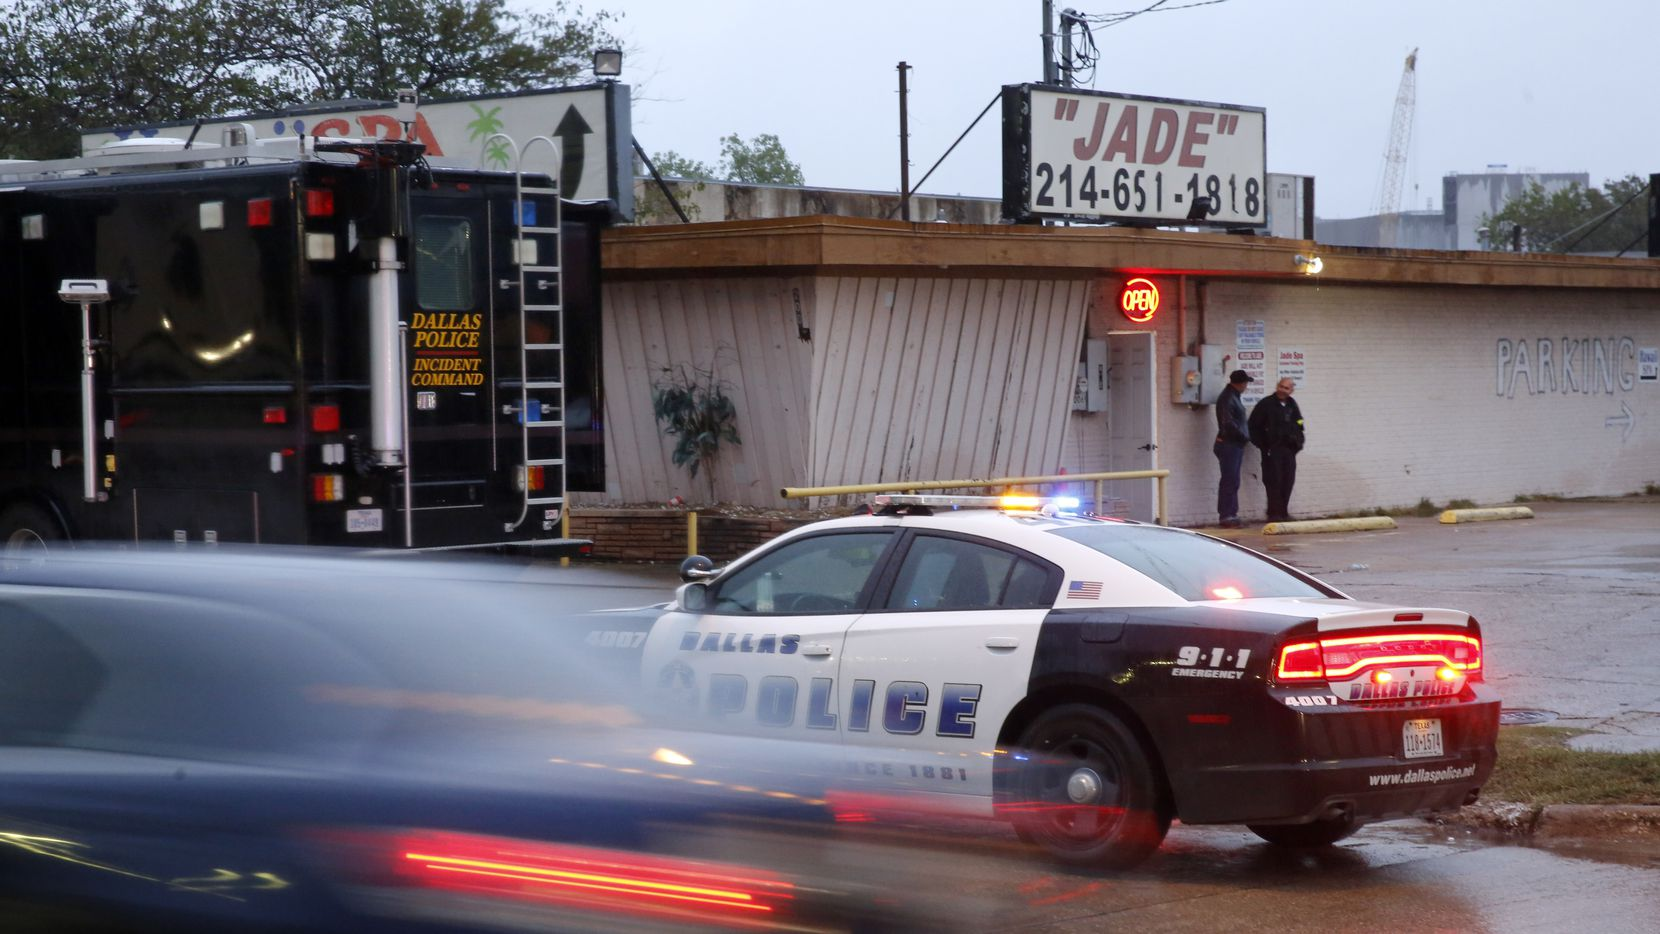 What it looked like early on the morning of Oct. 30, when Dallas police raided Jade Spa — and, elsewhere, Dragon House in Southlake and other homes and apartments around North Texas.